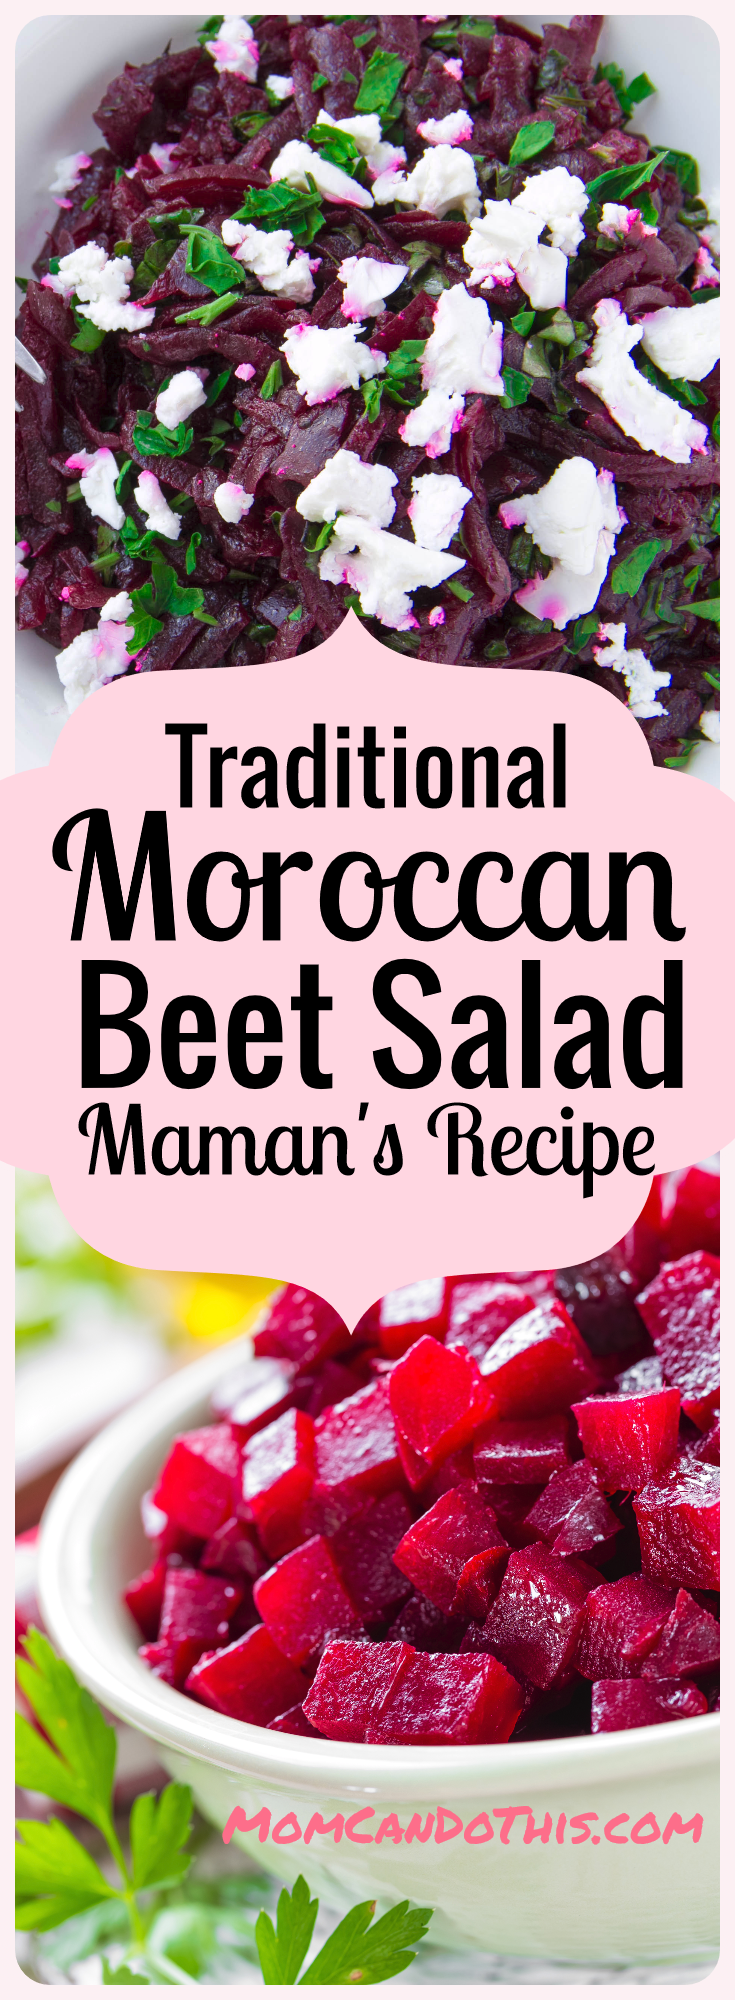 Traditional Moroccan Beet Salad. Easy dinner recipe for Moroccan Food. Click through and print the recipe! Easy Moroccan Salad recipe to try.